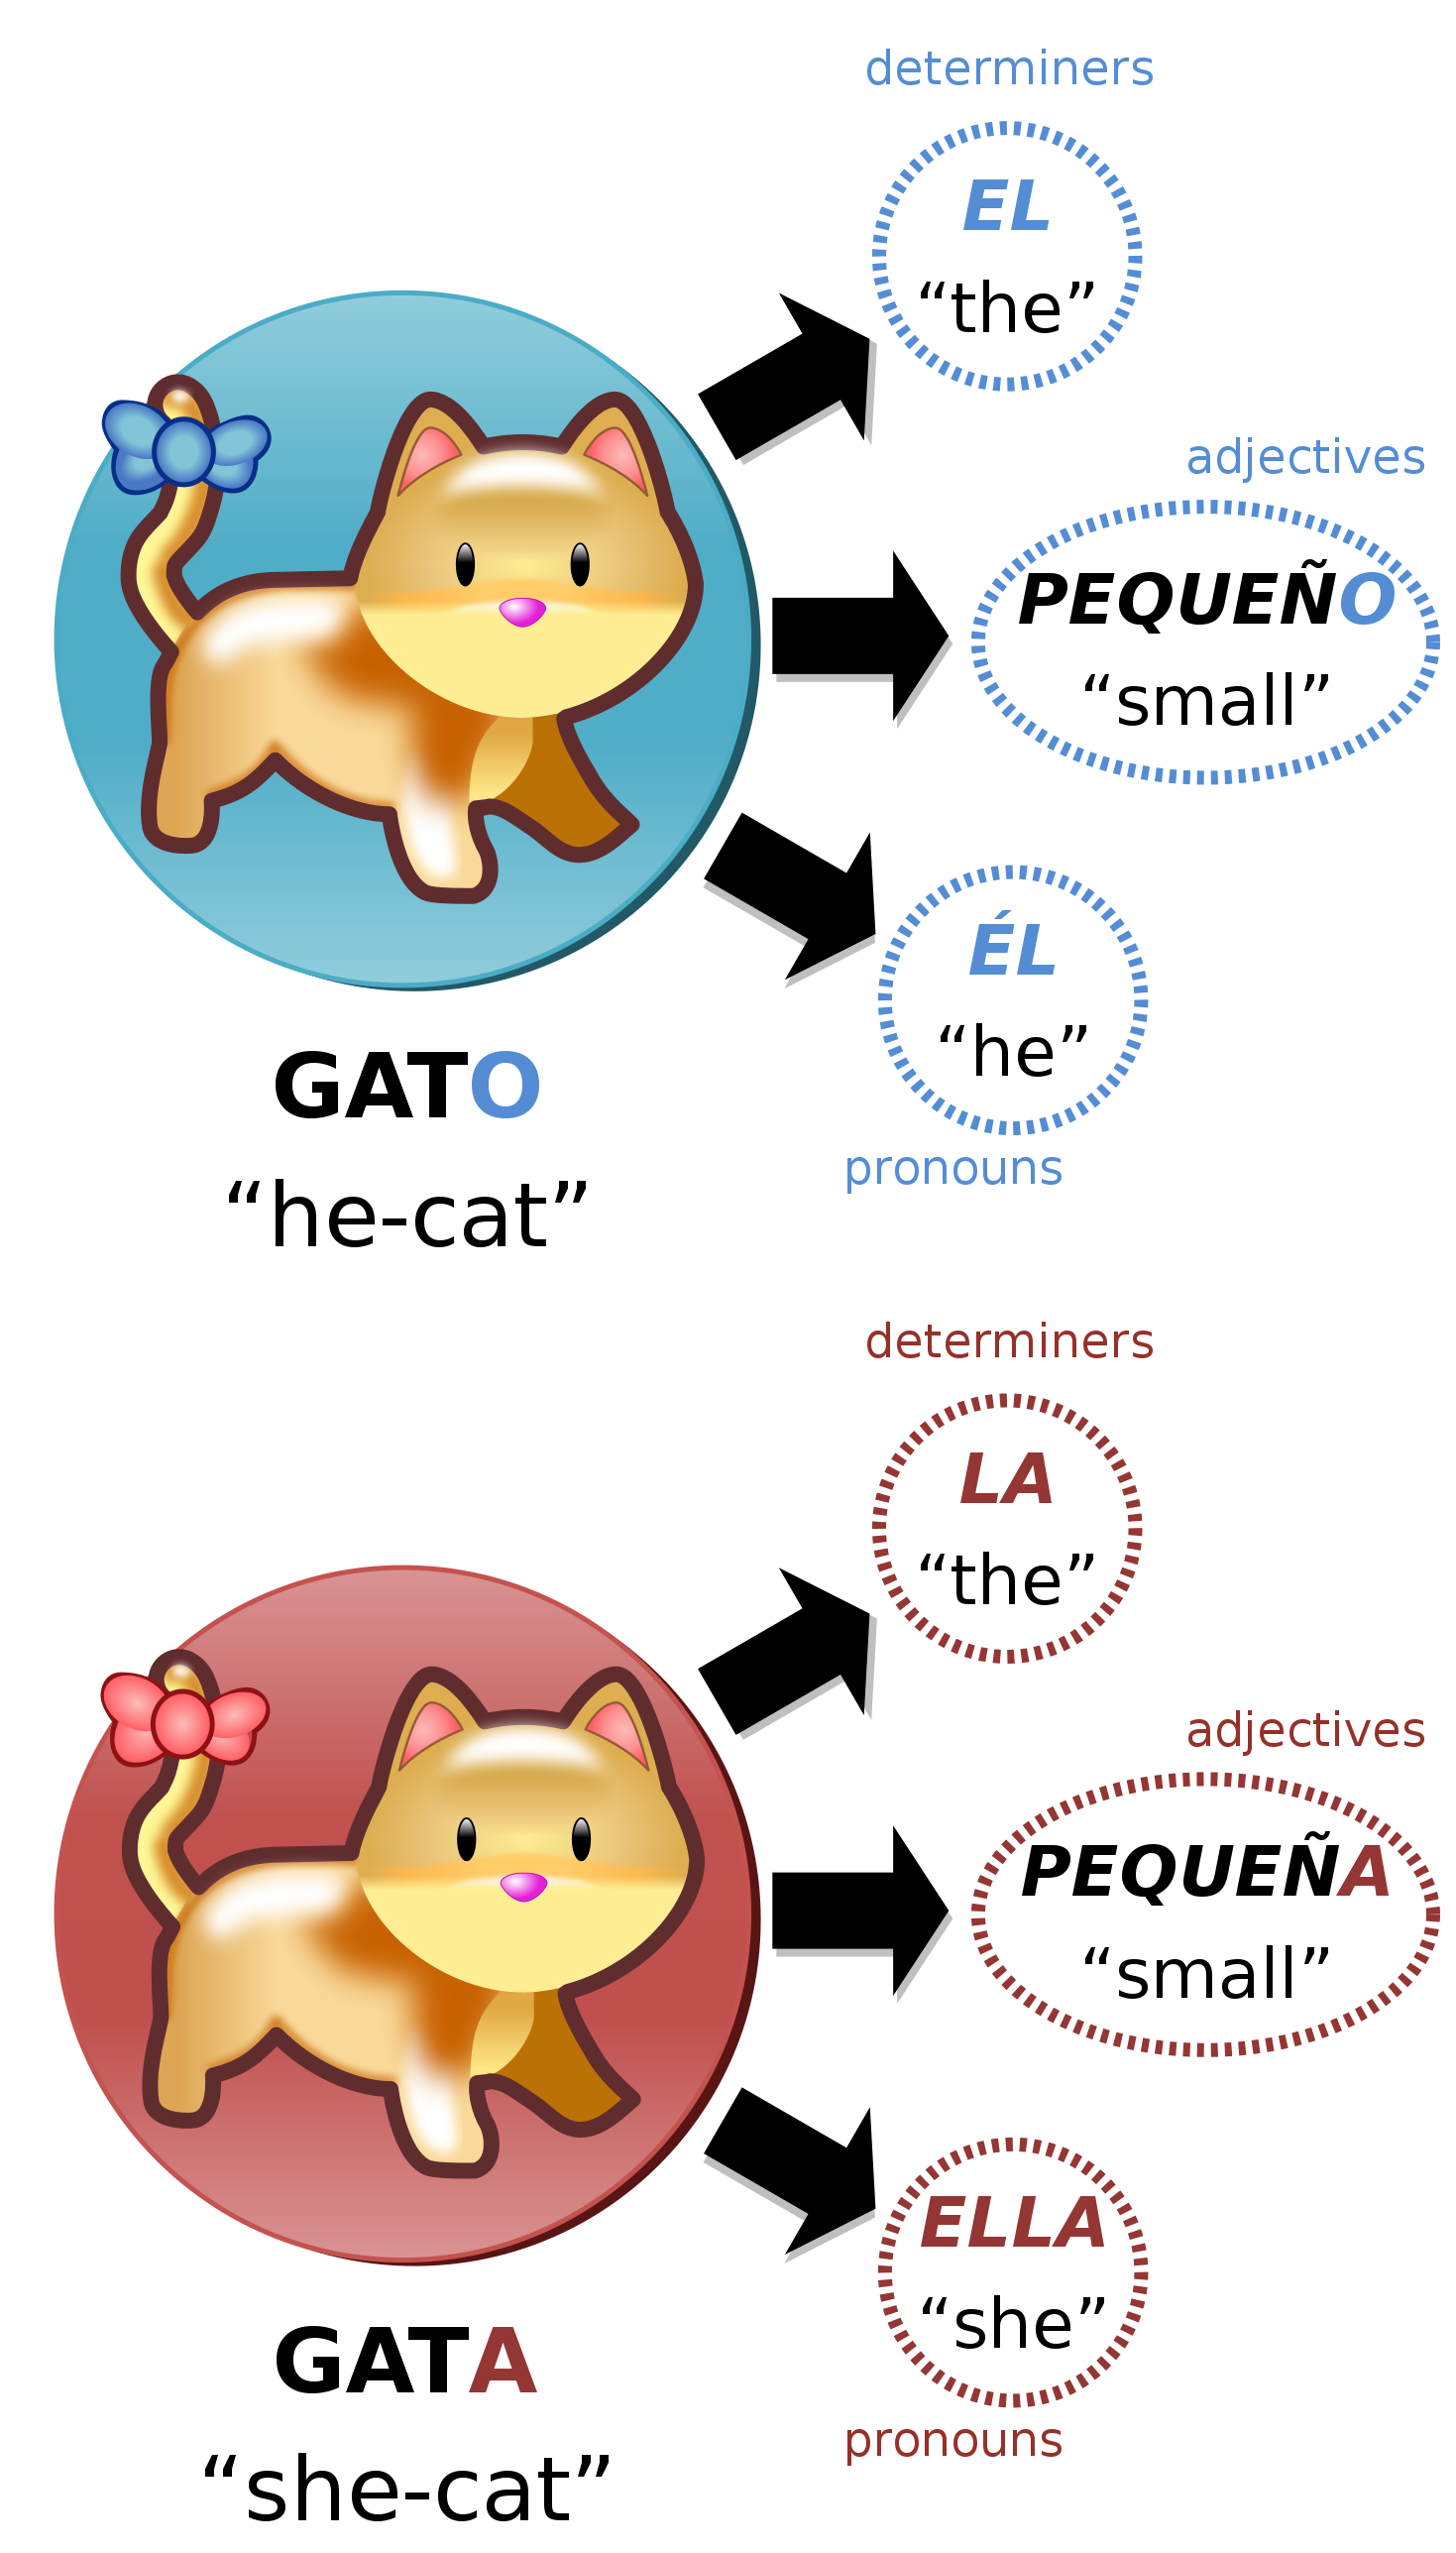 File:Gato vs gata, illustration of grammatical gender in Spanish.